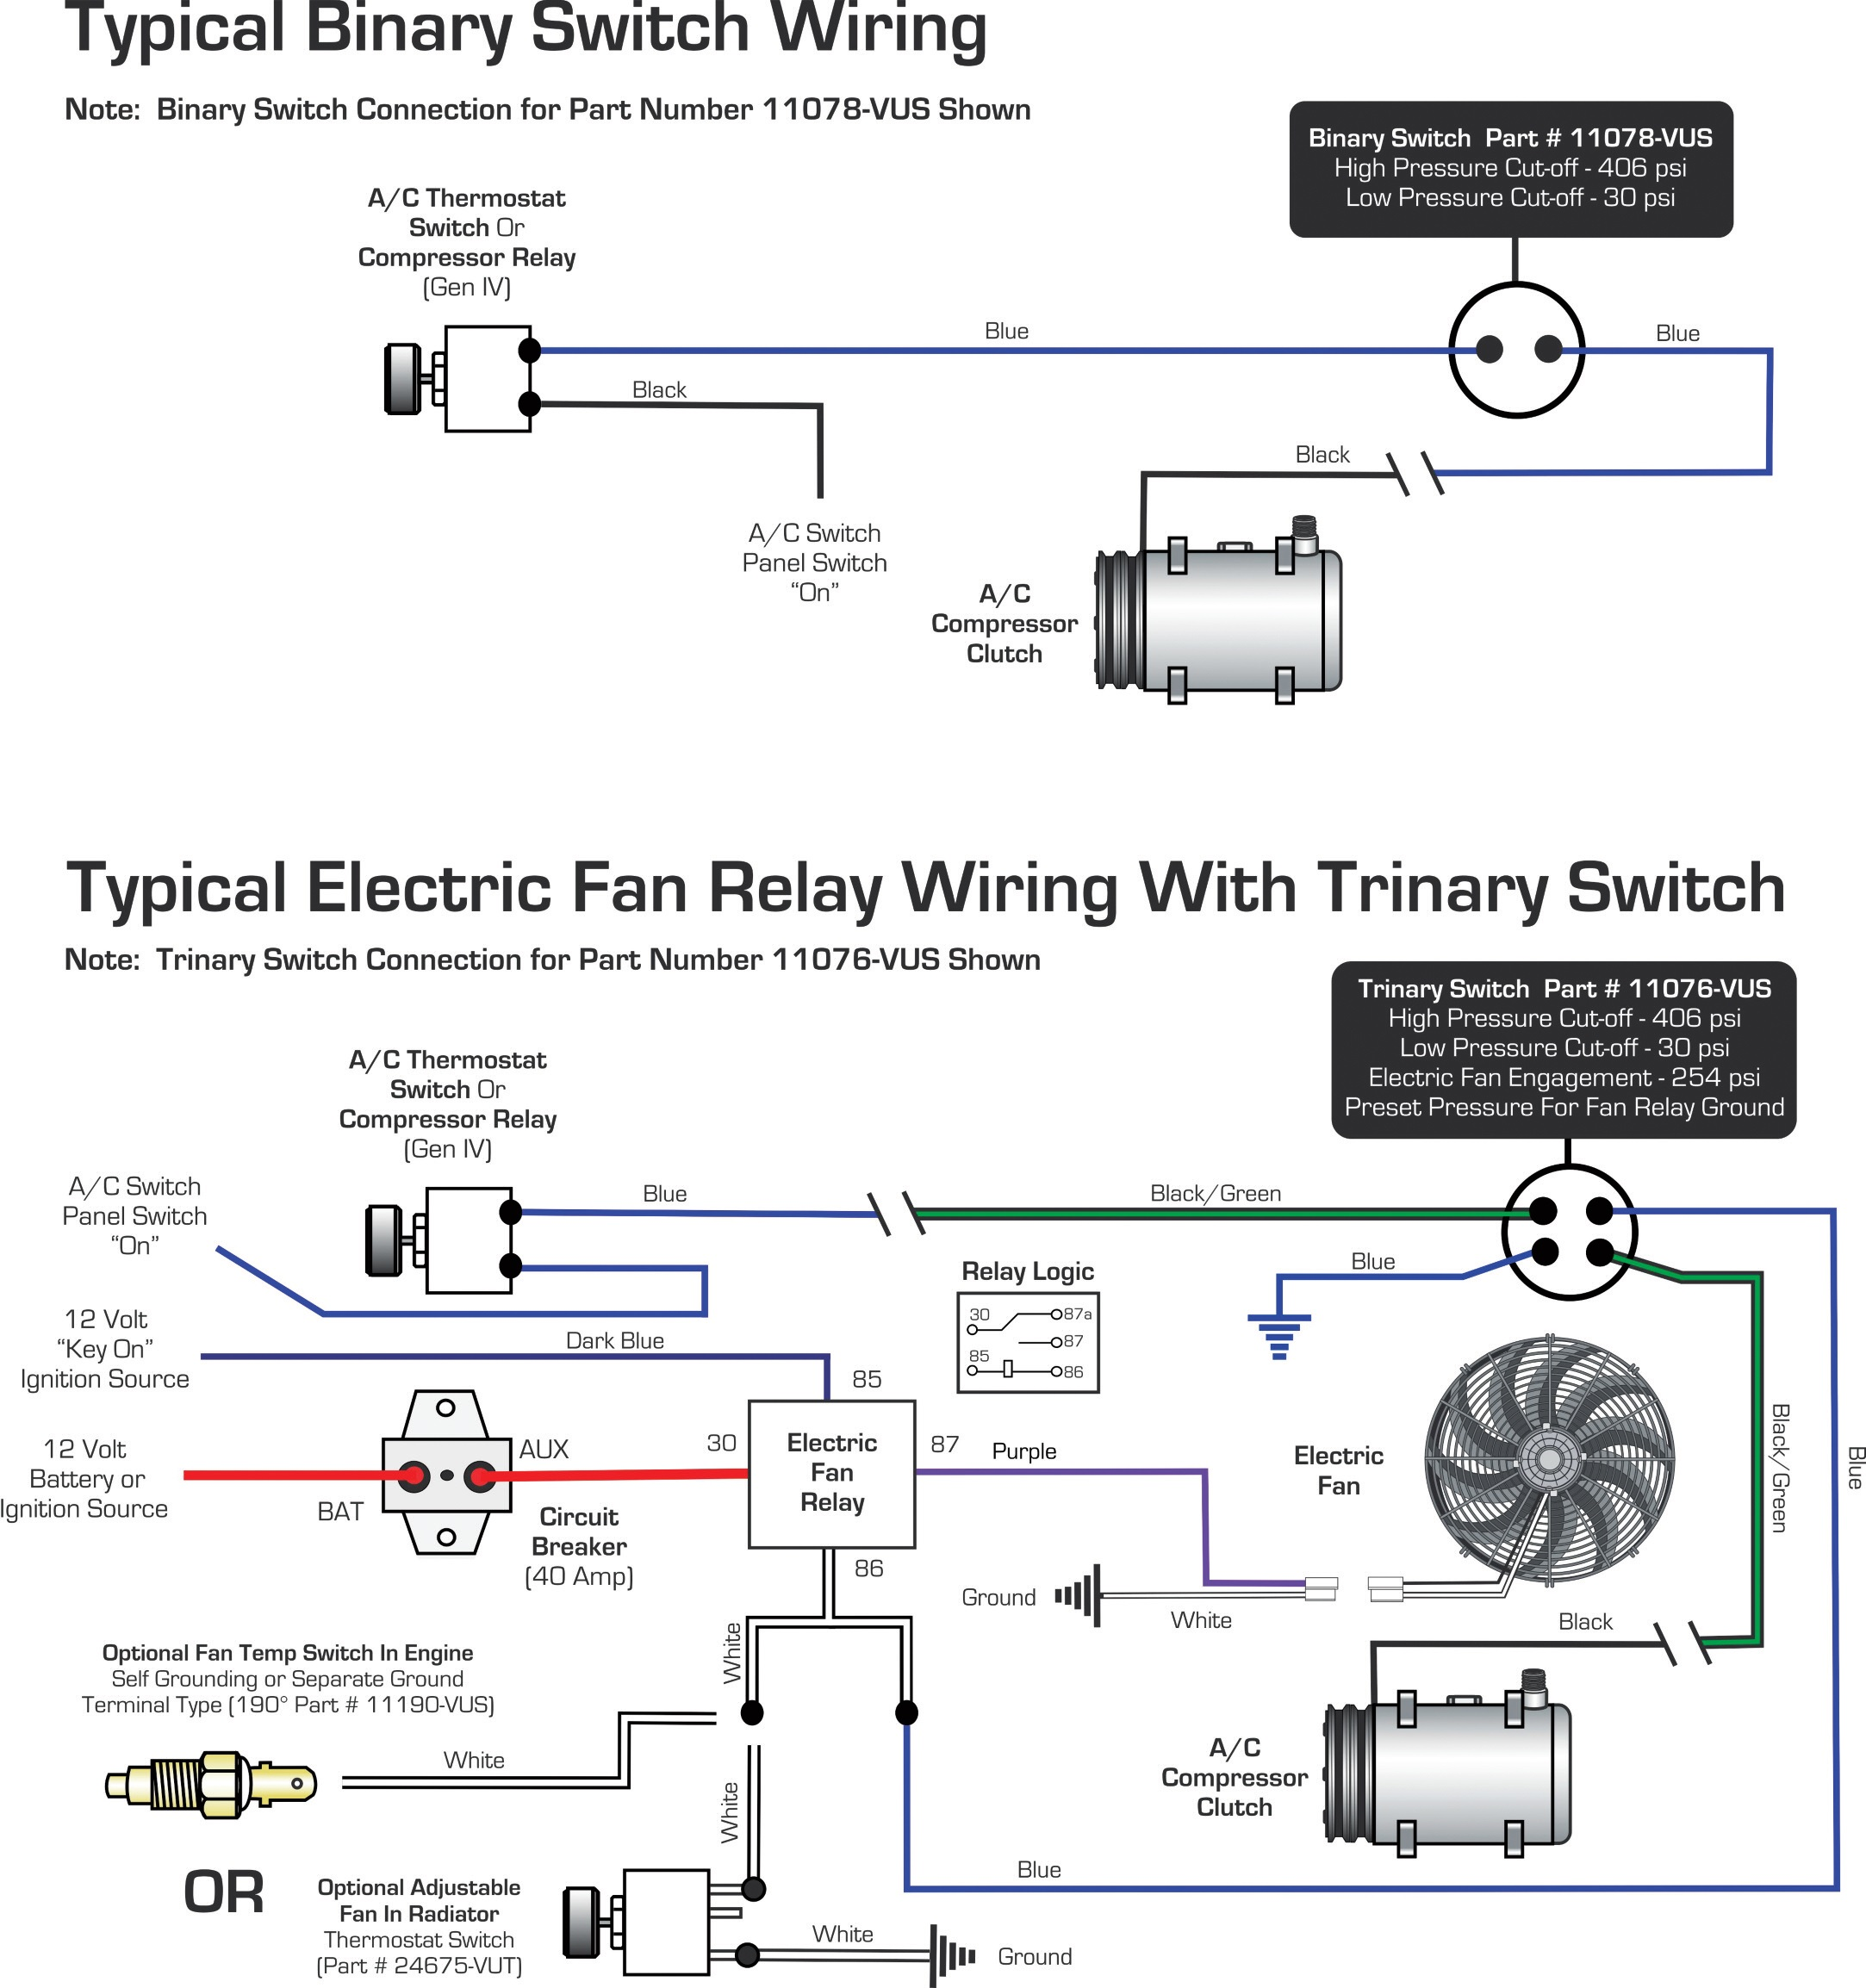 vintage air » blog archive wiring diagrams binary switch / trinary, Wiring diagram